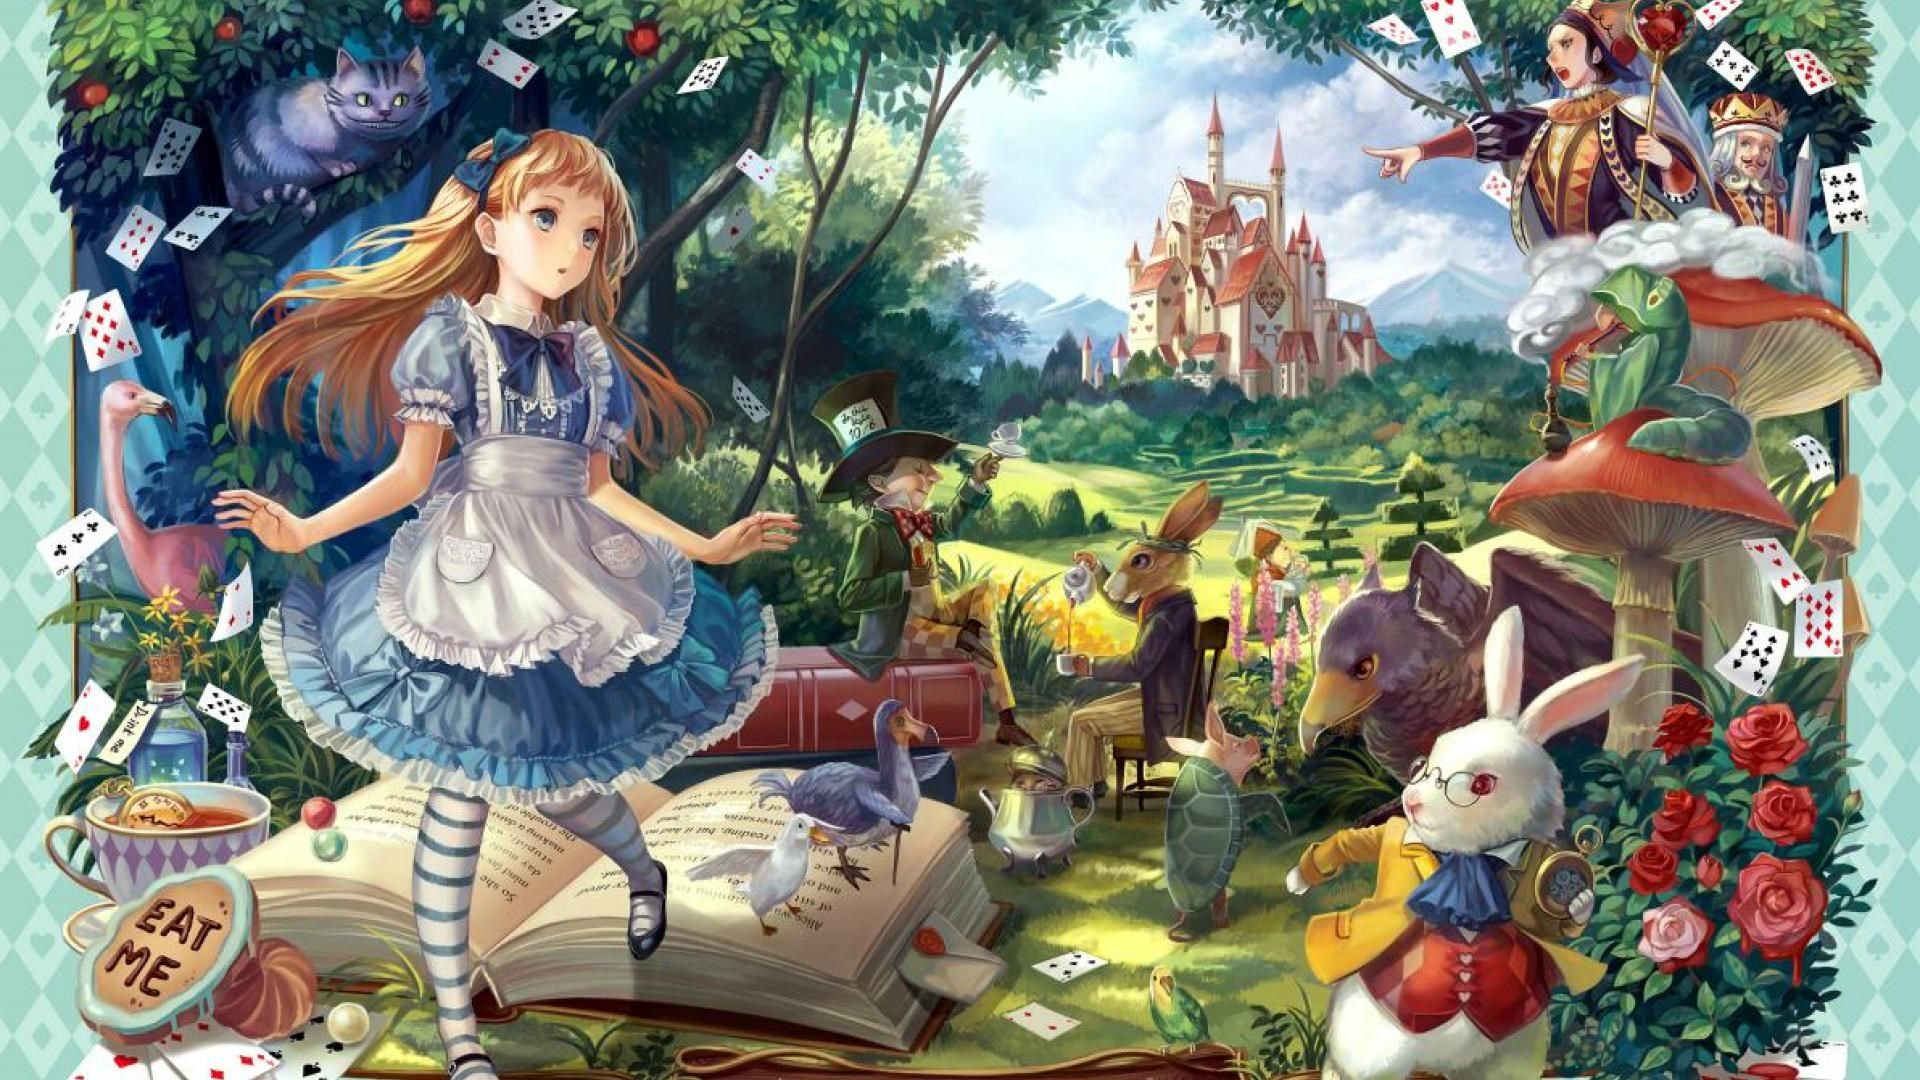 Full Hd Alice In Wonderland Wallpaper Iskusstvo Iskusstvo